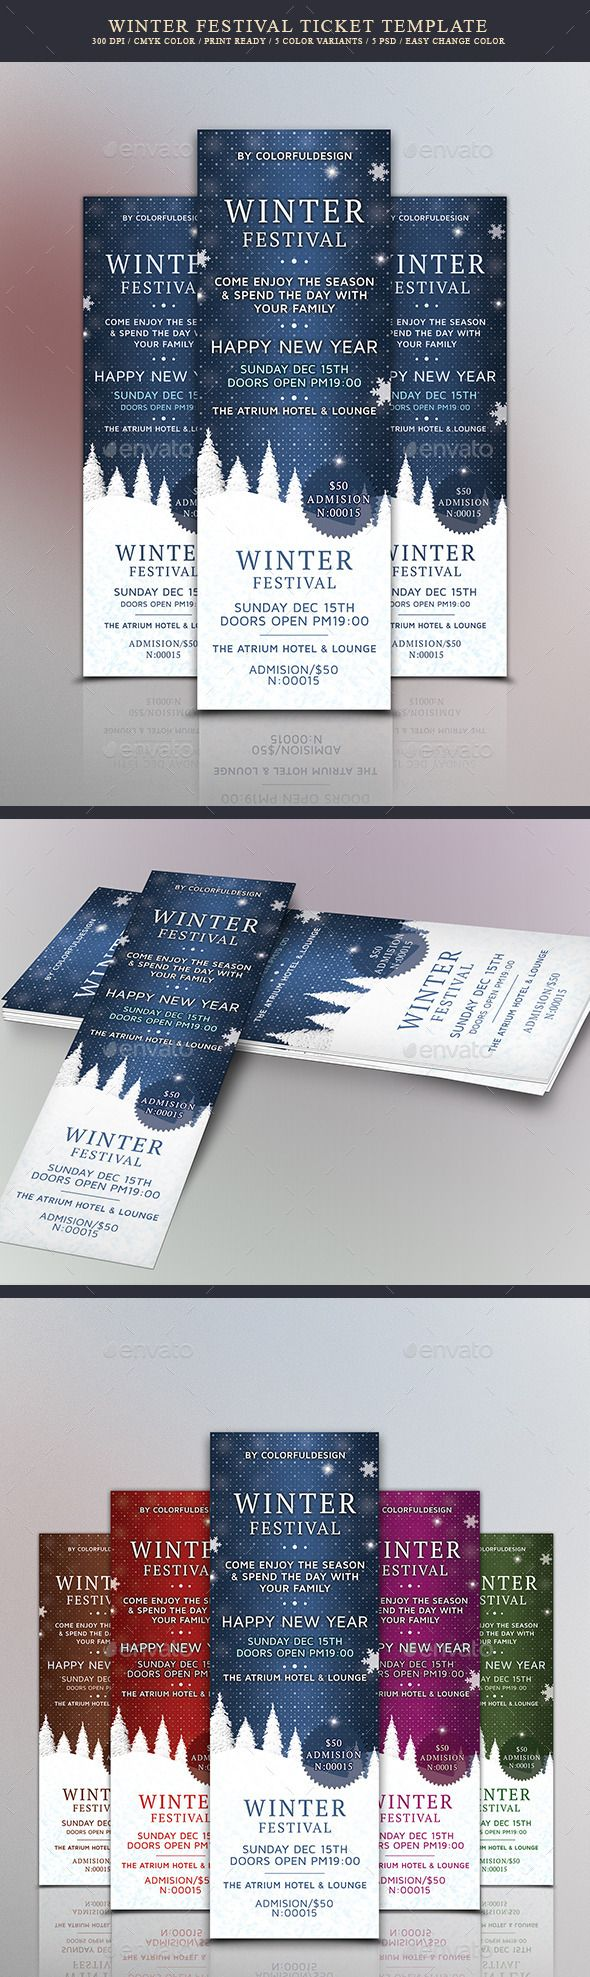 Concert Ticket Template Free Download Amusing 139 Best Invitation Design Images On Pinterest  Christmas Parties .